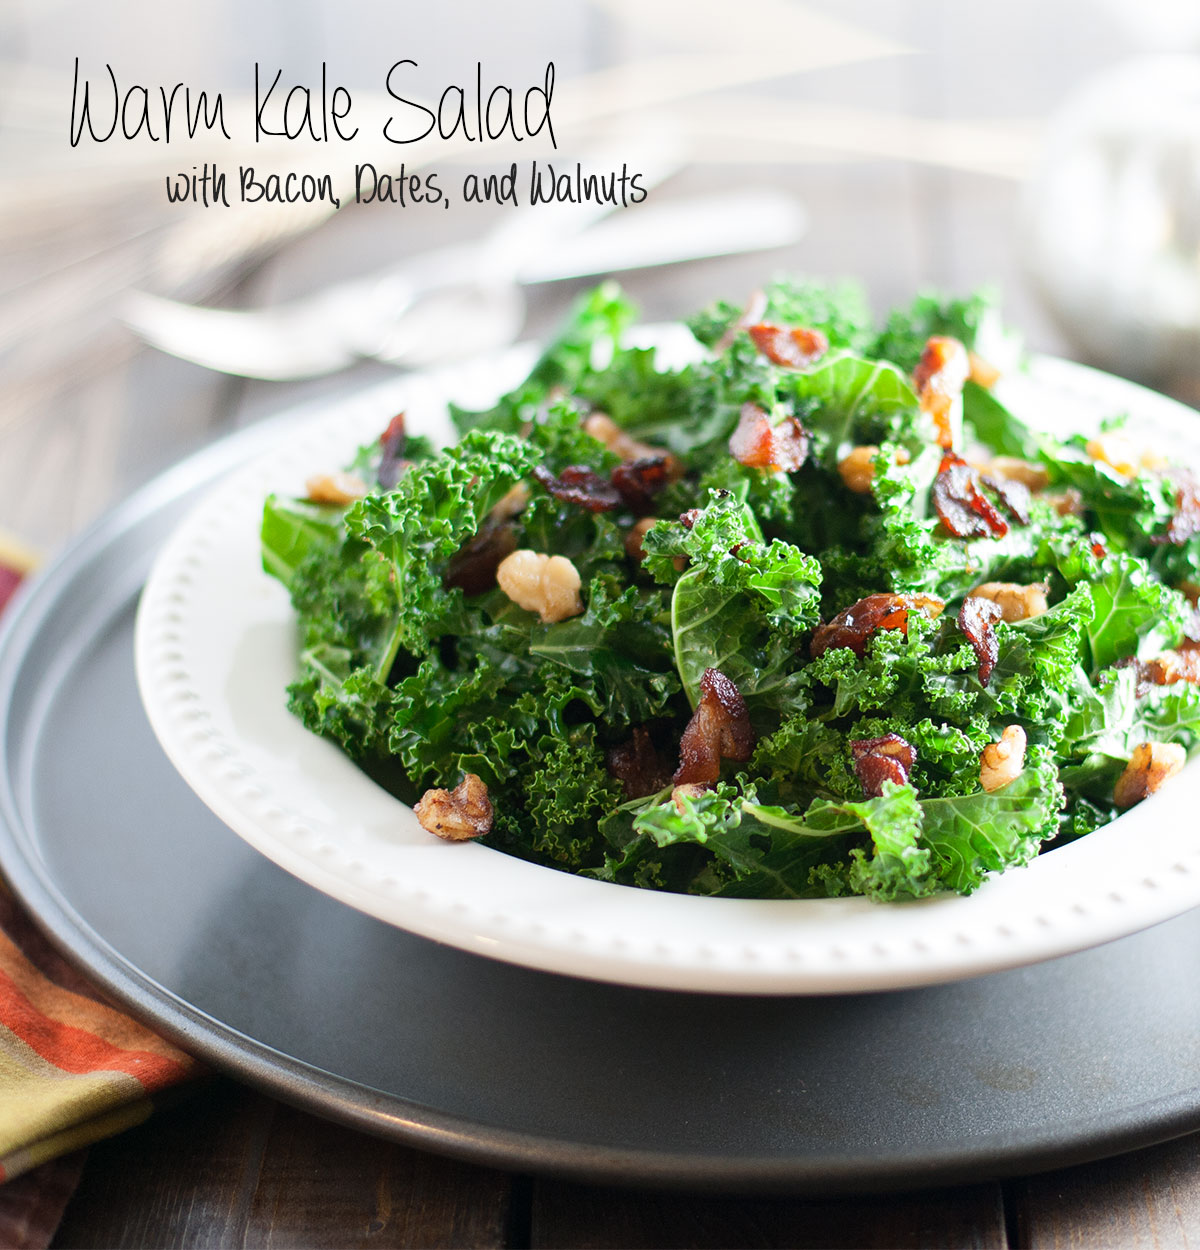 Warm Kale Salad with Bacon Dates and Walnuts